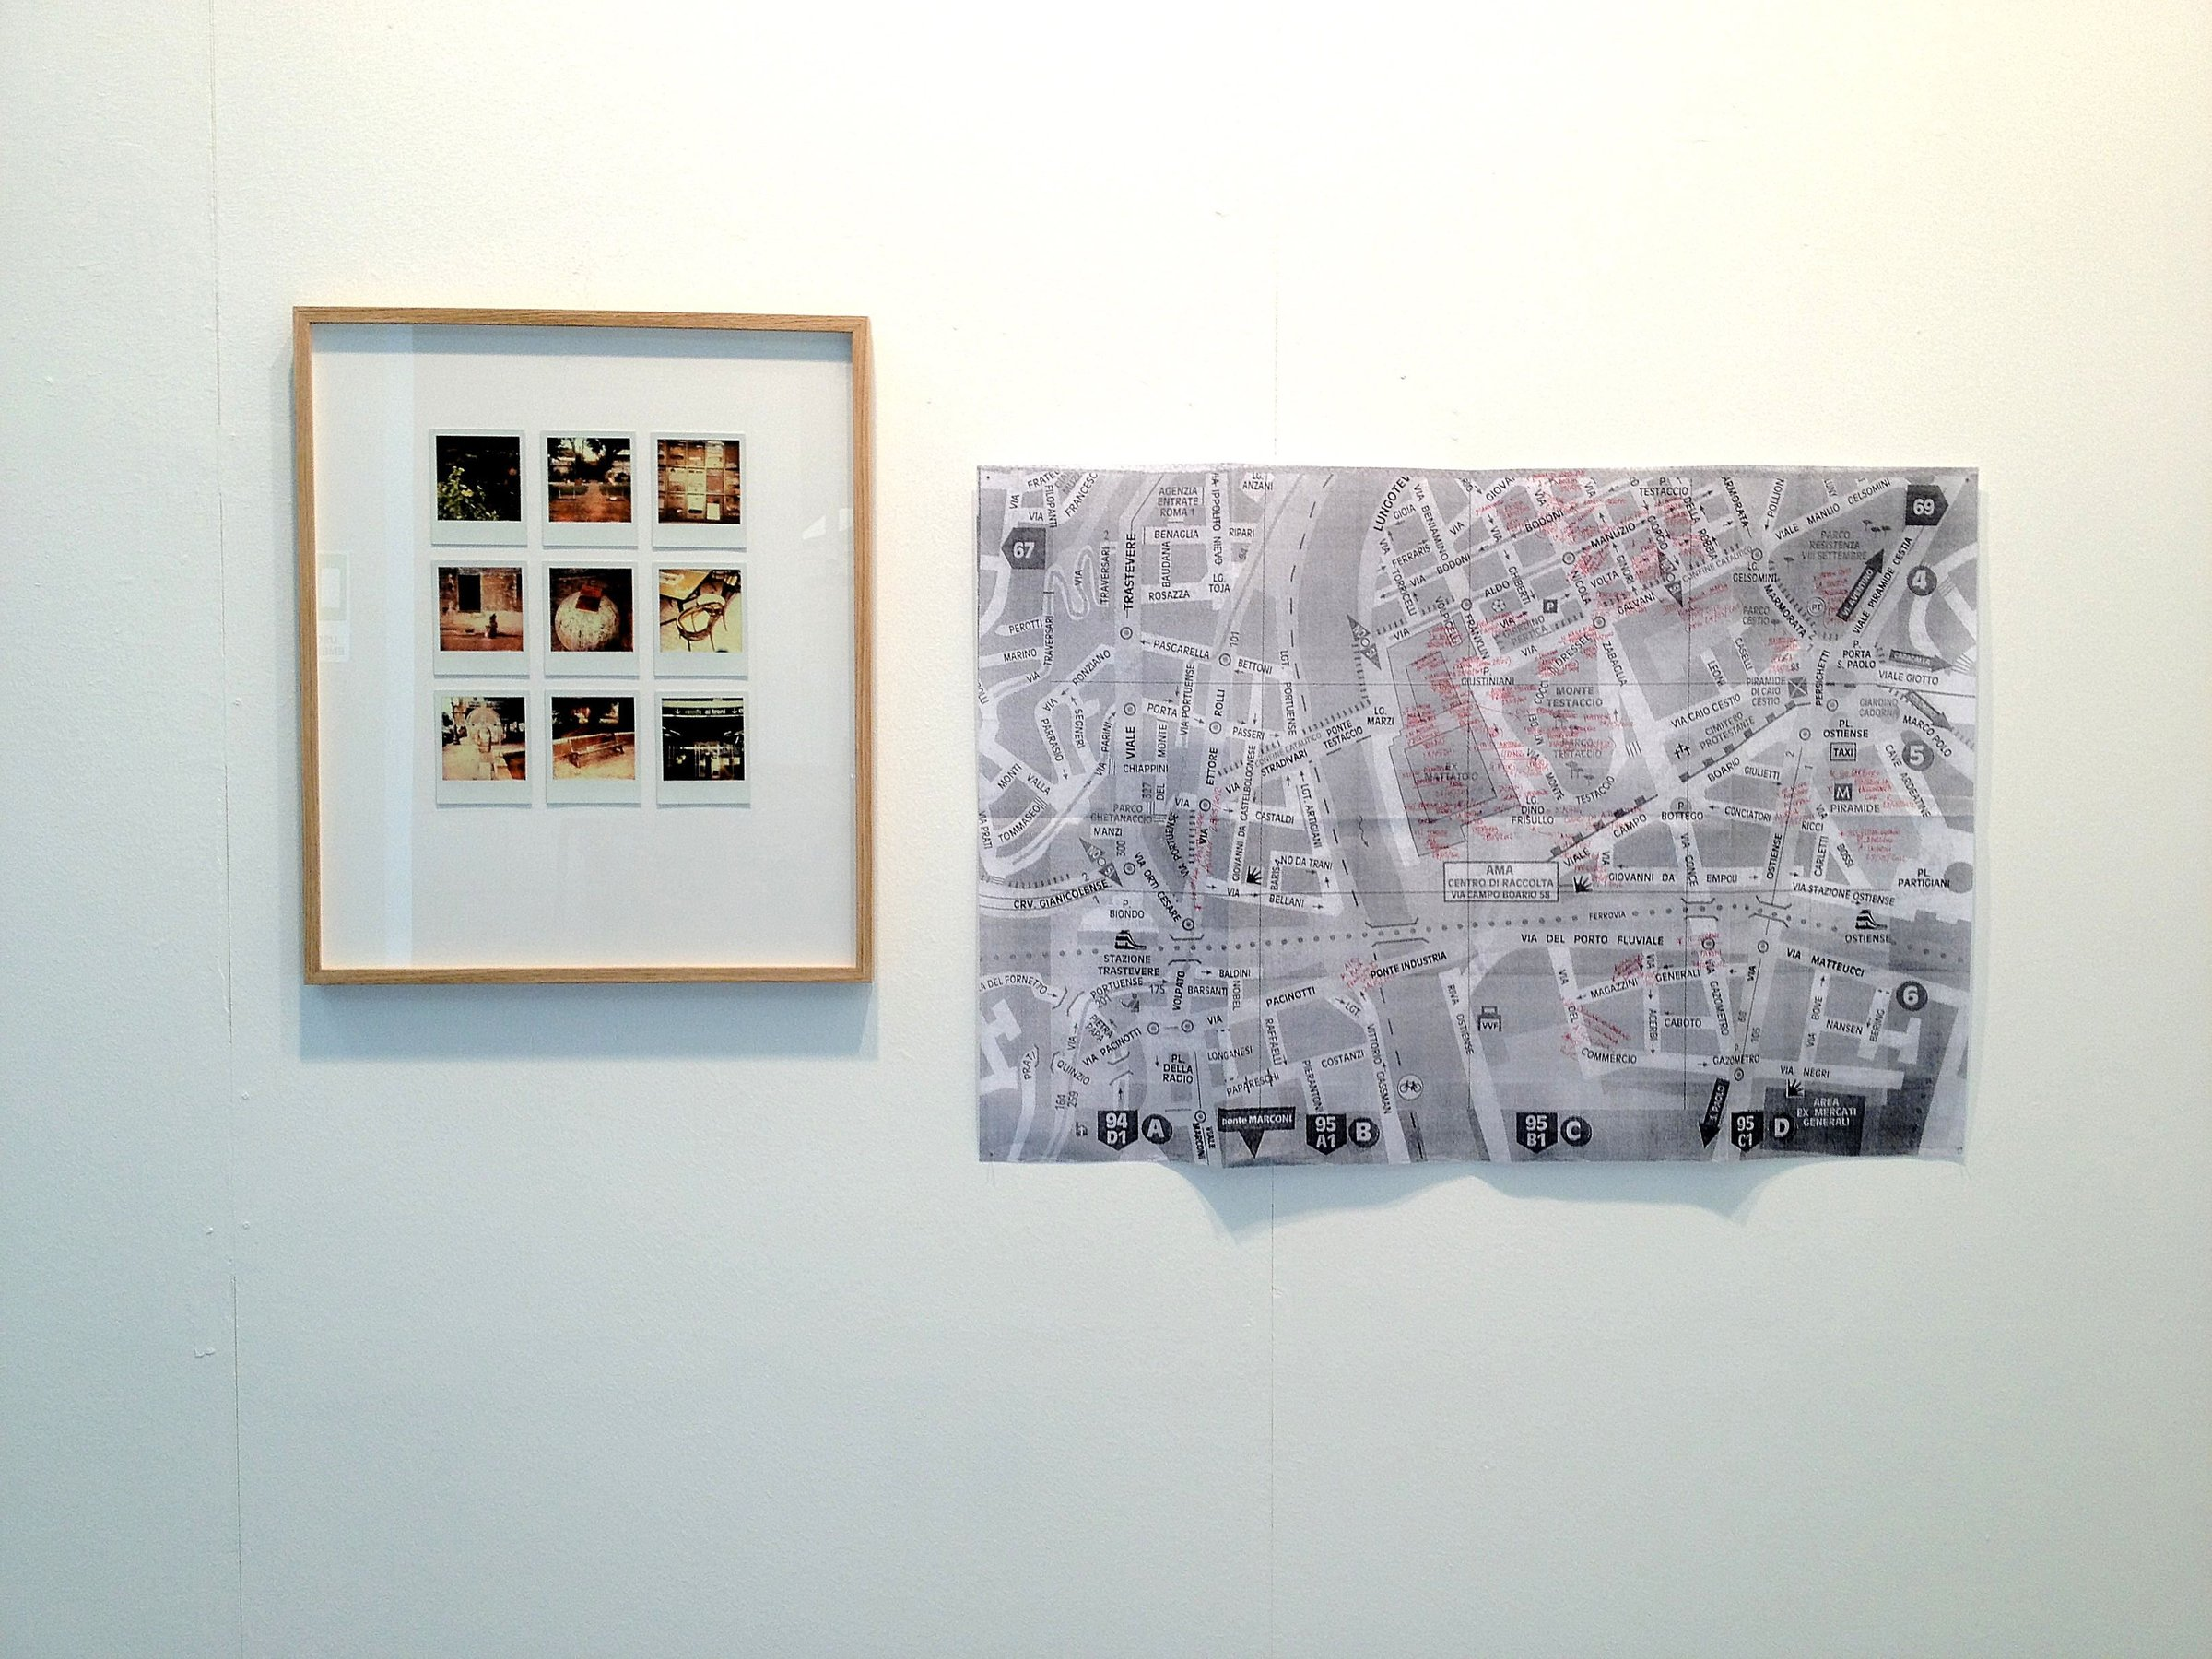 Testaccio - Free-exchange, 2010 installation, series of 9 framed polaroids, large format Xerox map of the area, used books